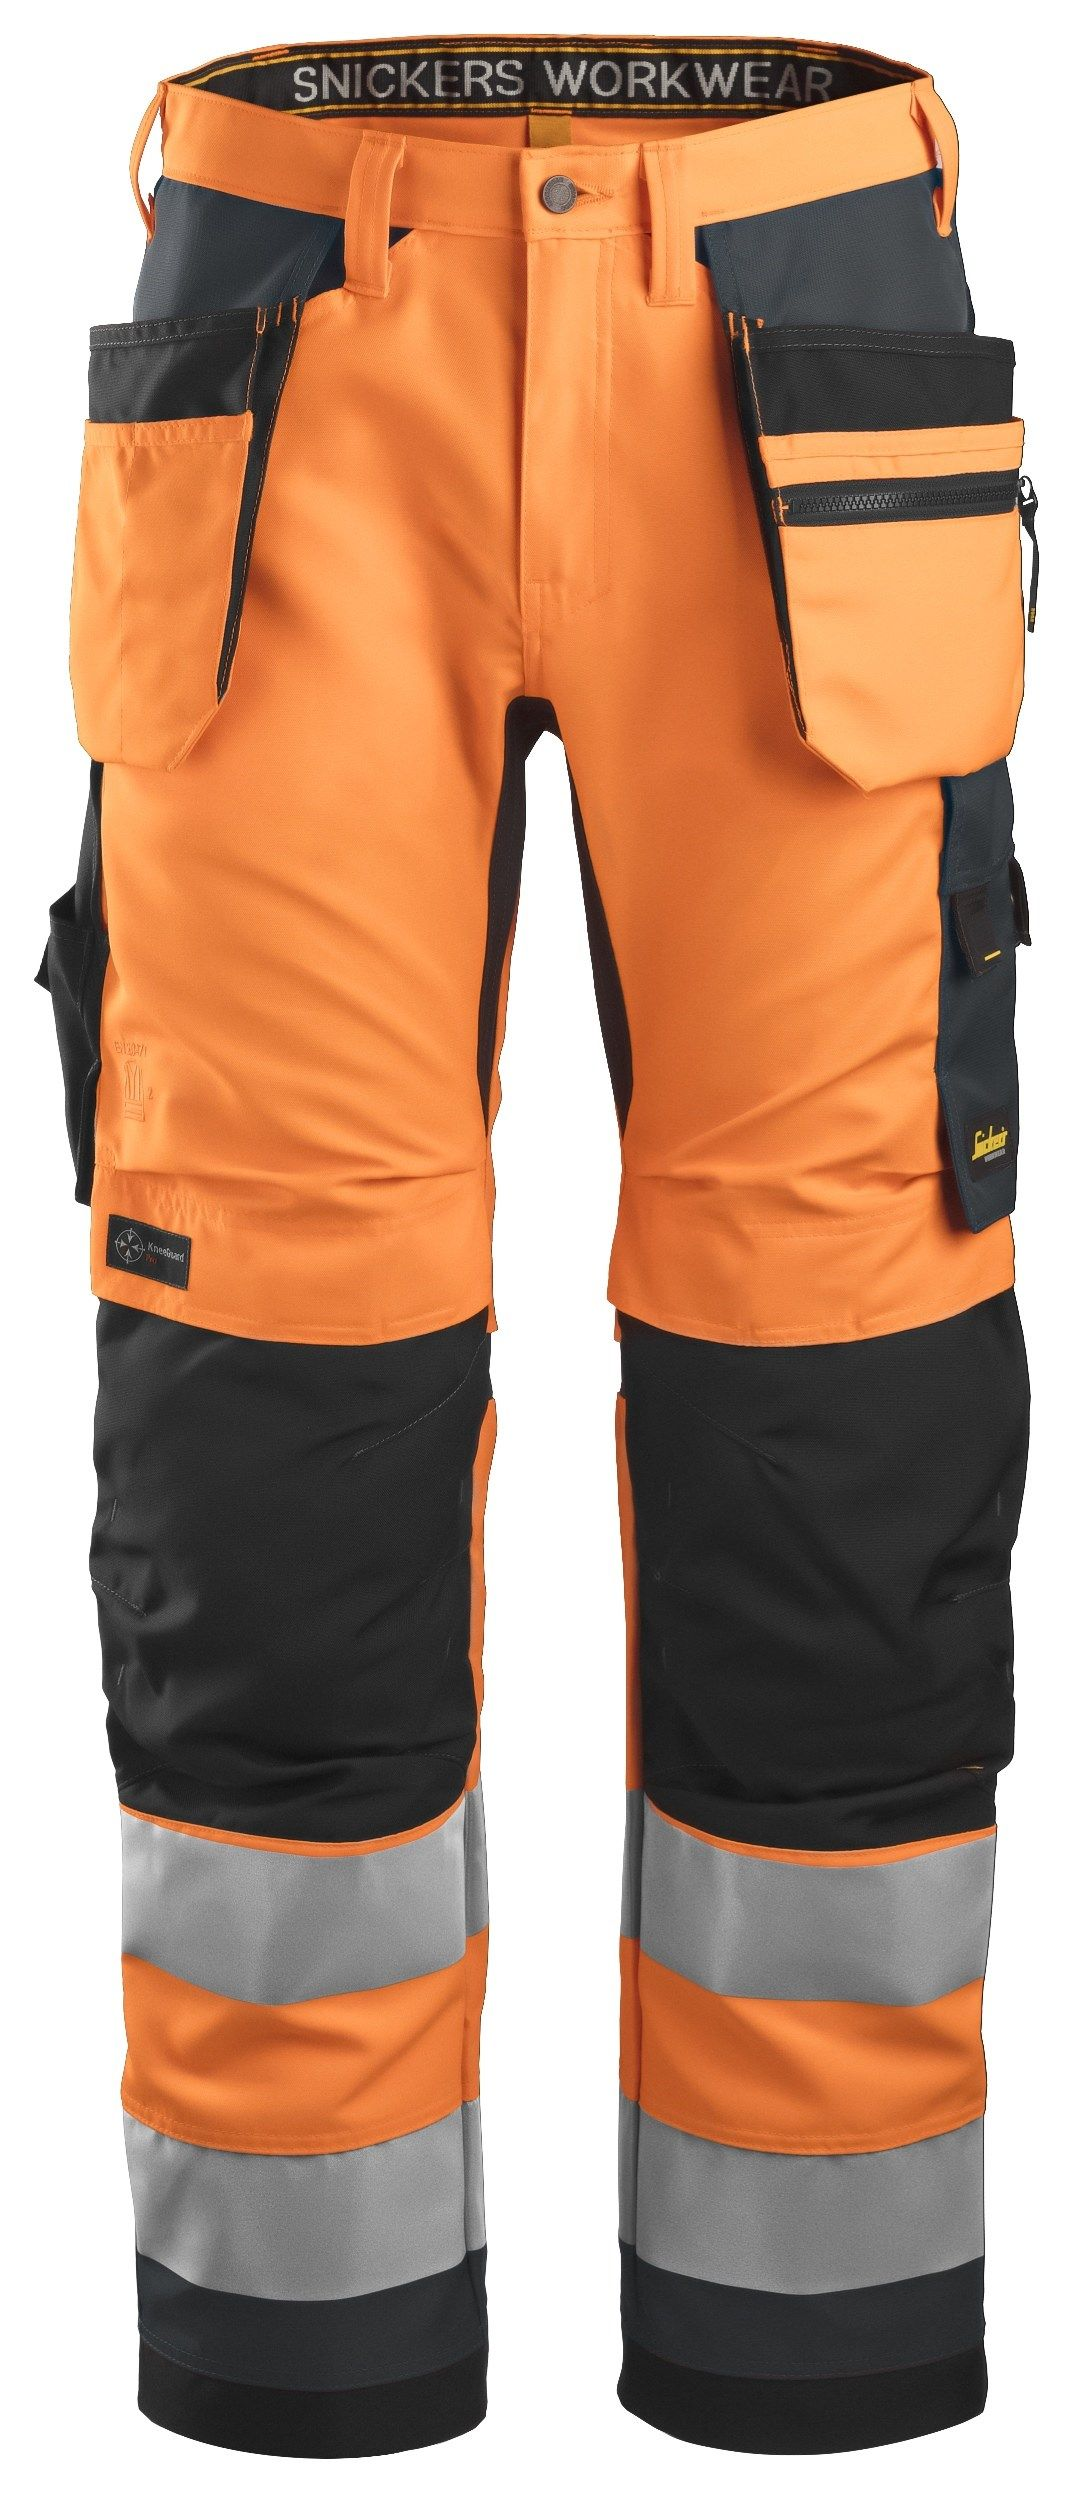 Snickers 6230 Allround Work High-Vis Work Trousers Holster Pockets+ Class 2 Orange